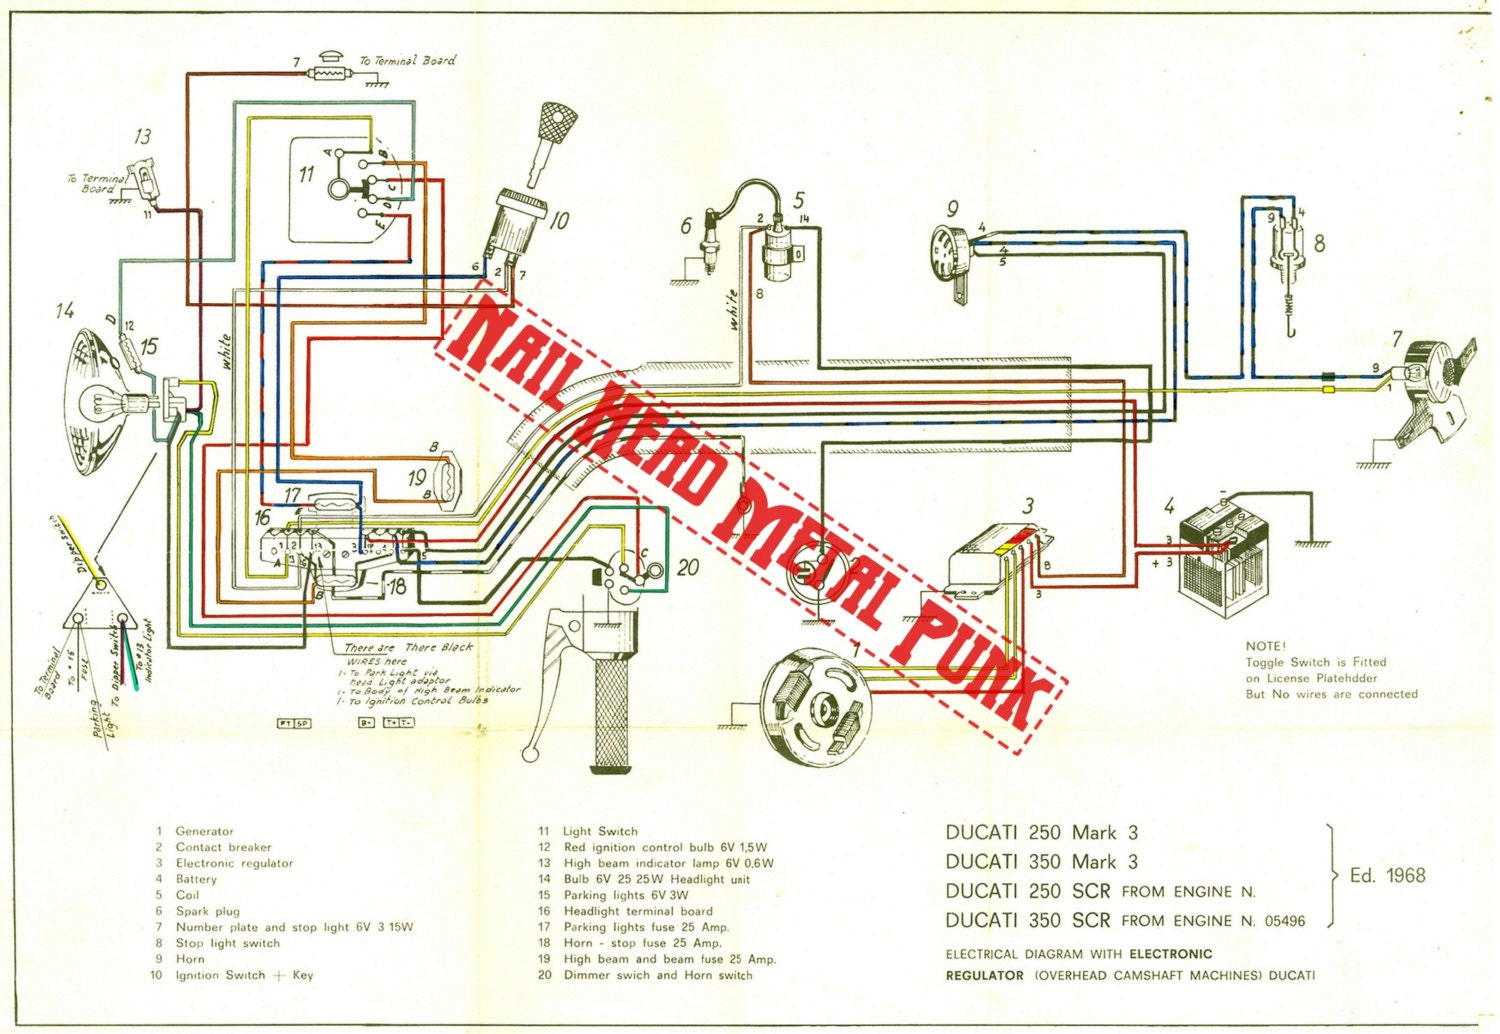 Ducati Multistrada 1000 Ds Wiring Diagram